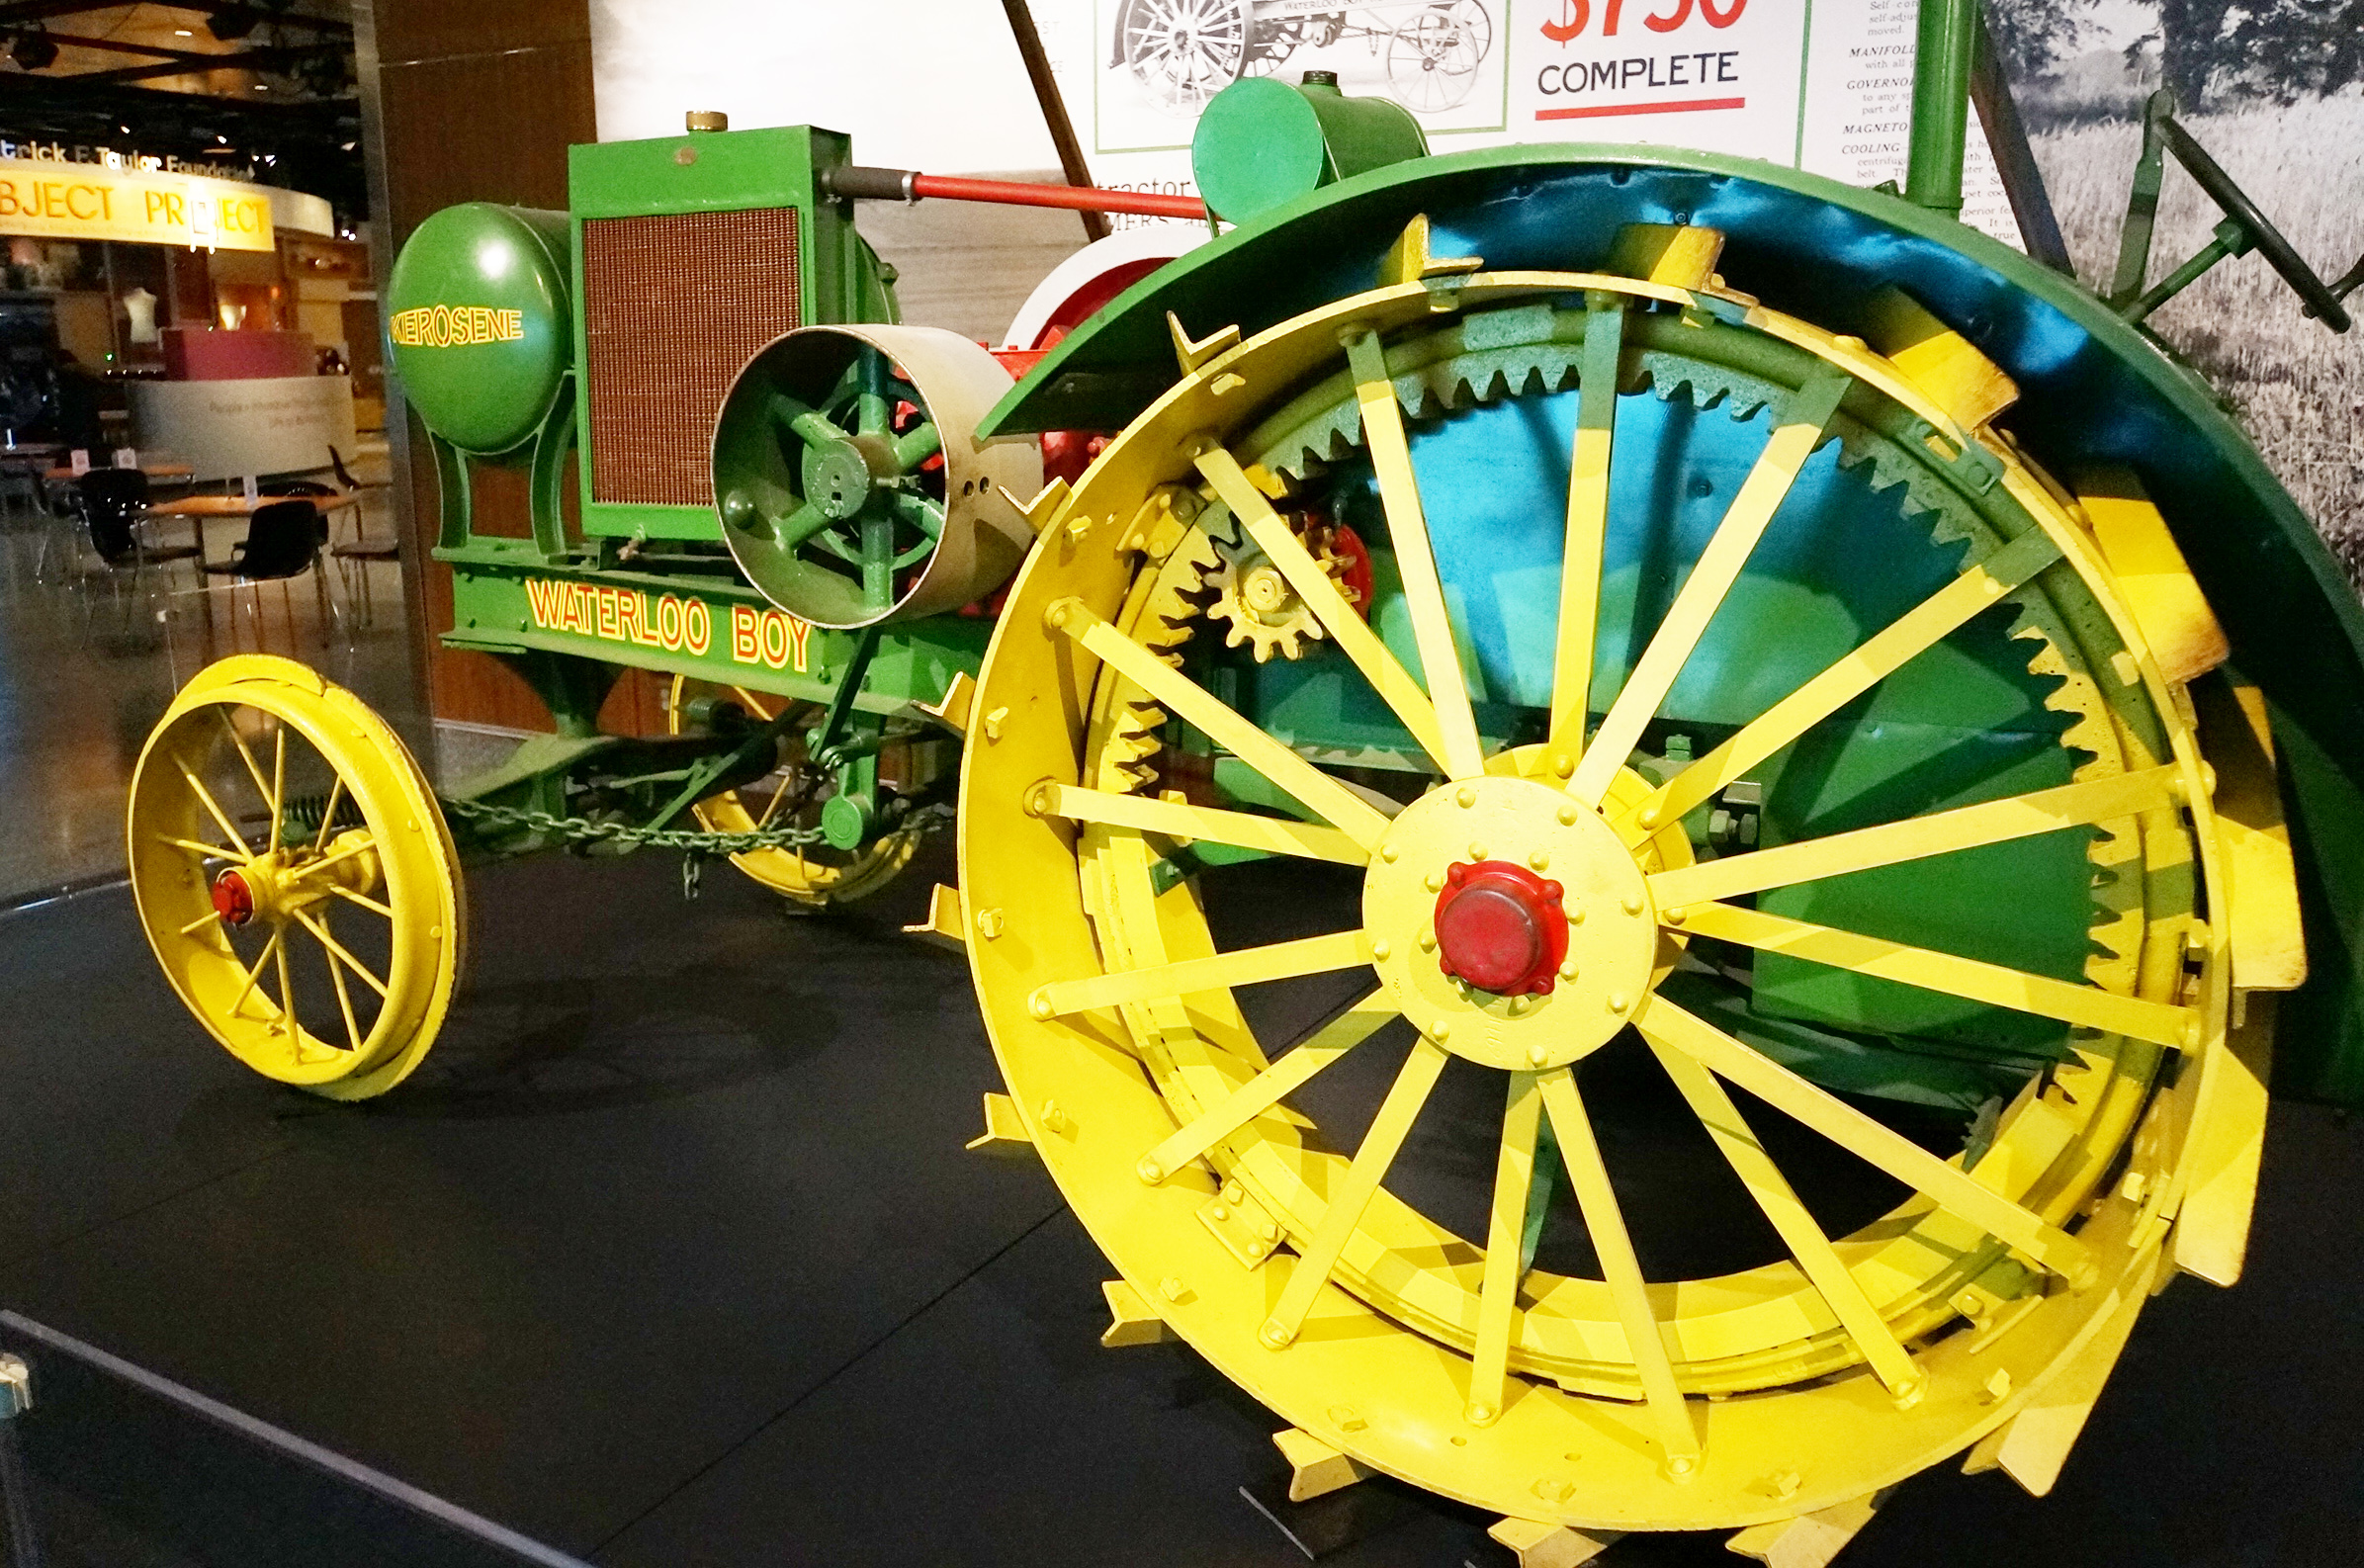 green tractor with large yellow spoked wheels